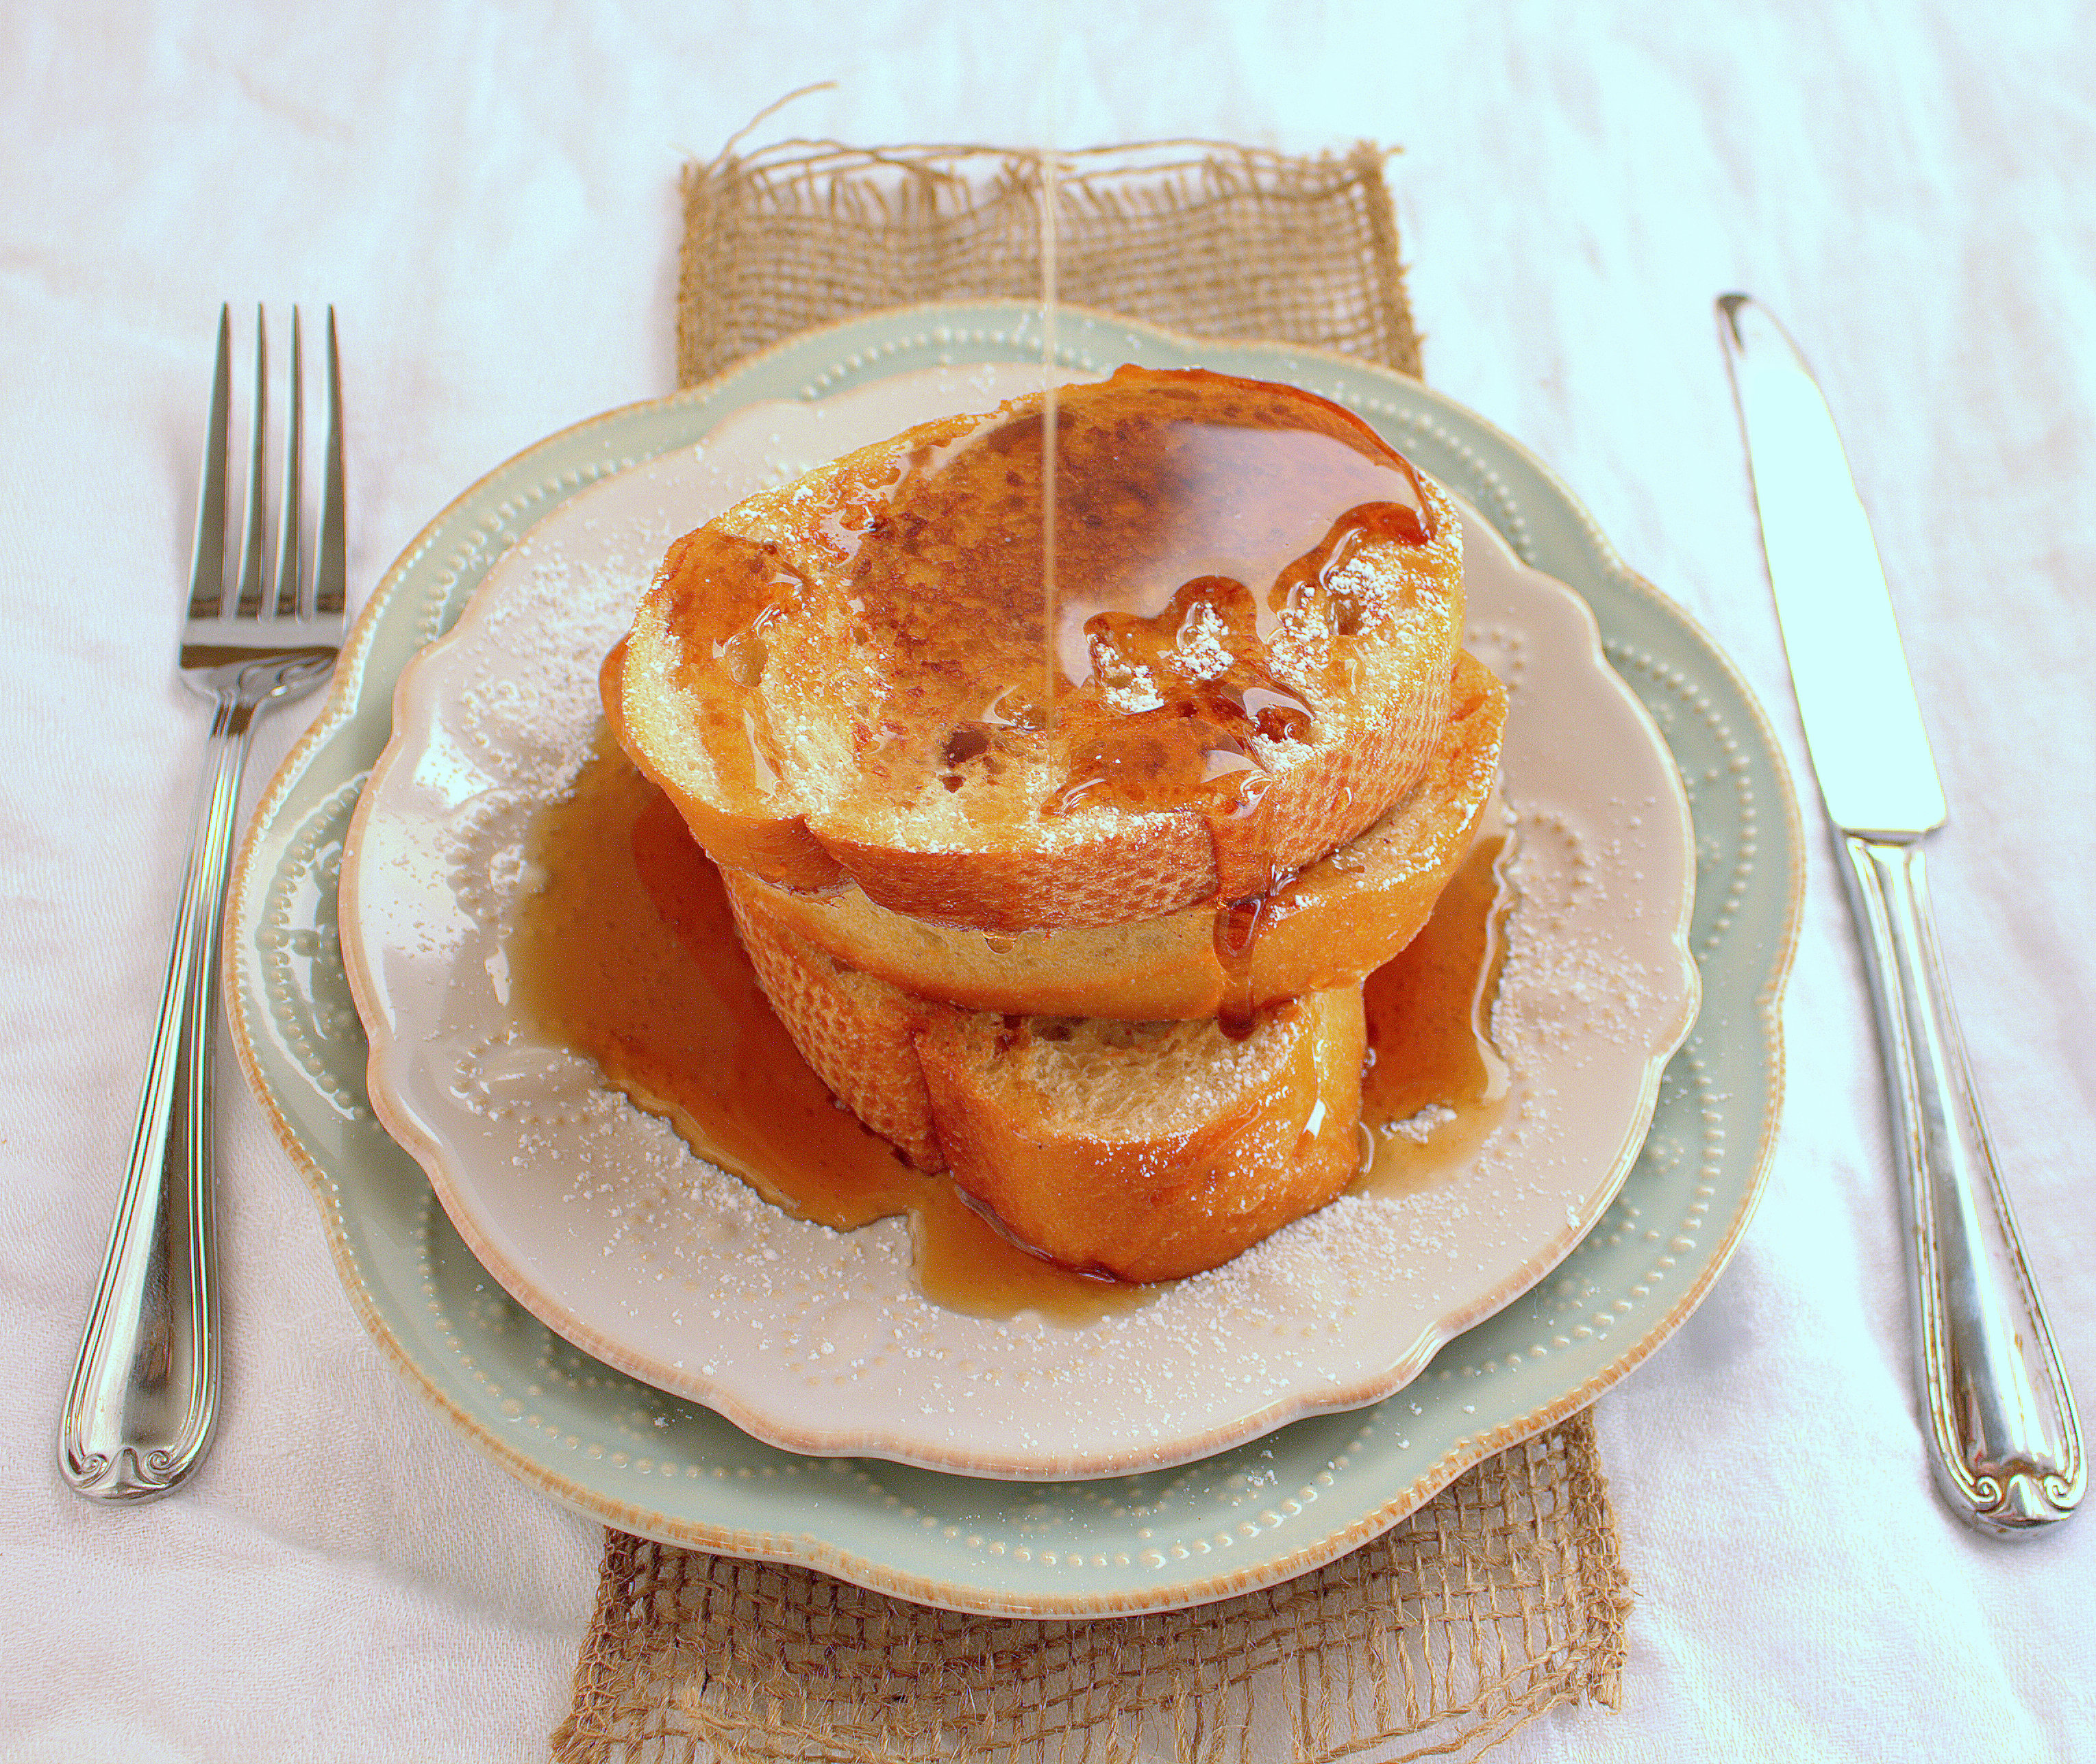 Delicious French Toast with lots of syrup